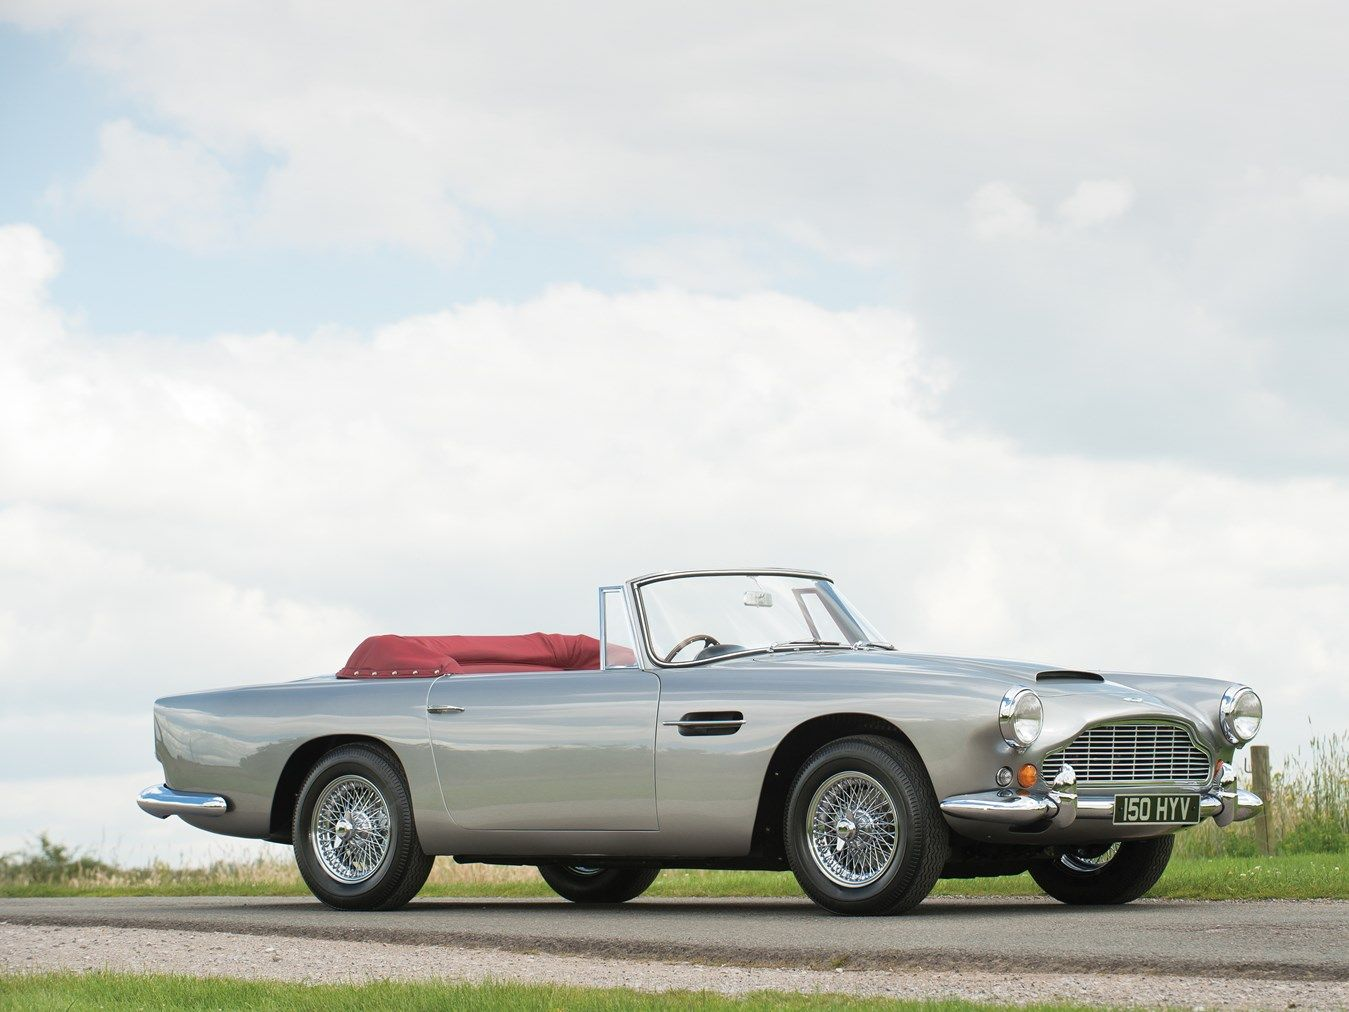 1963 Aston Martin DB4 Series V Convertible - One of the rarest Aston ...